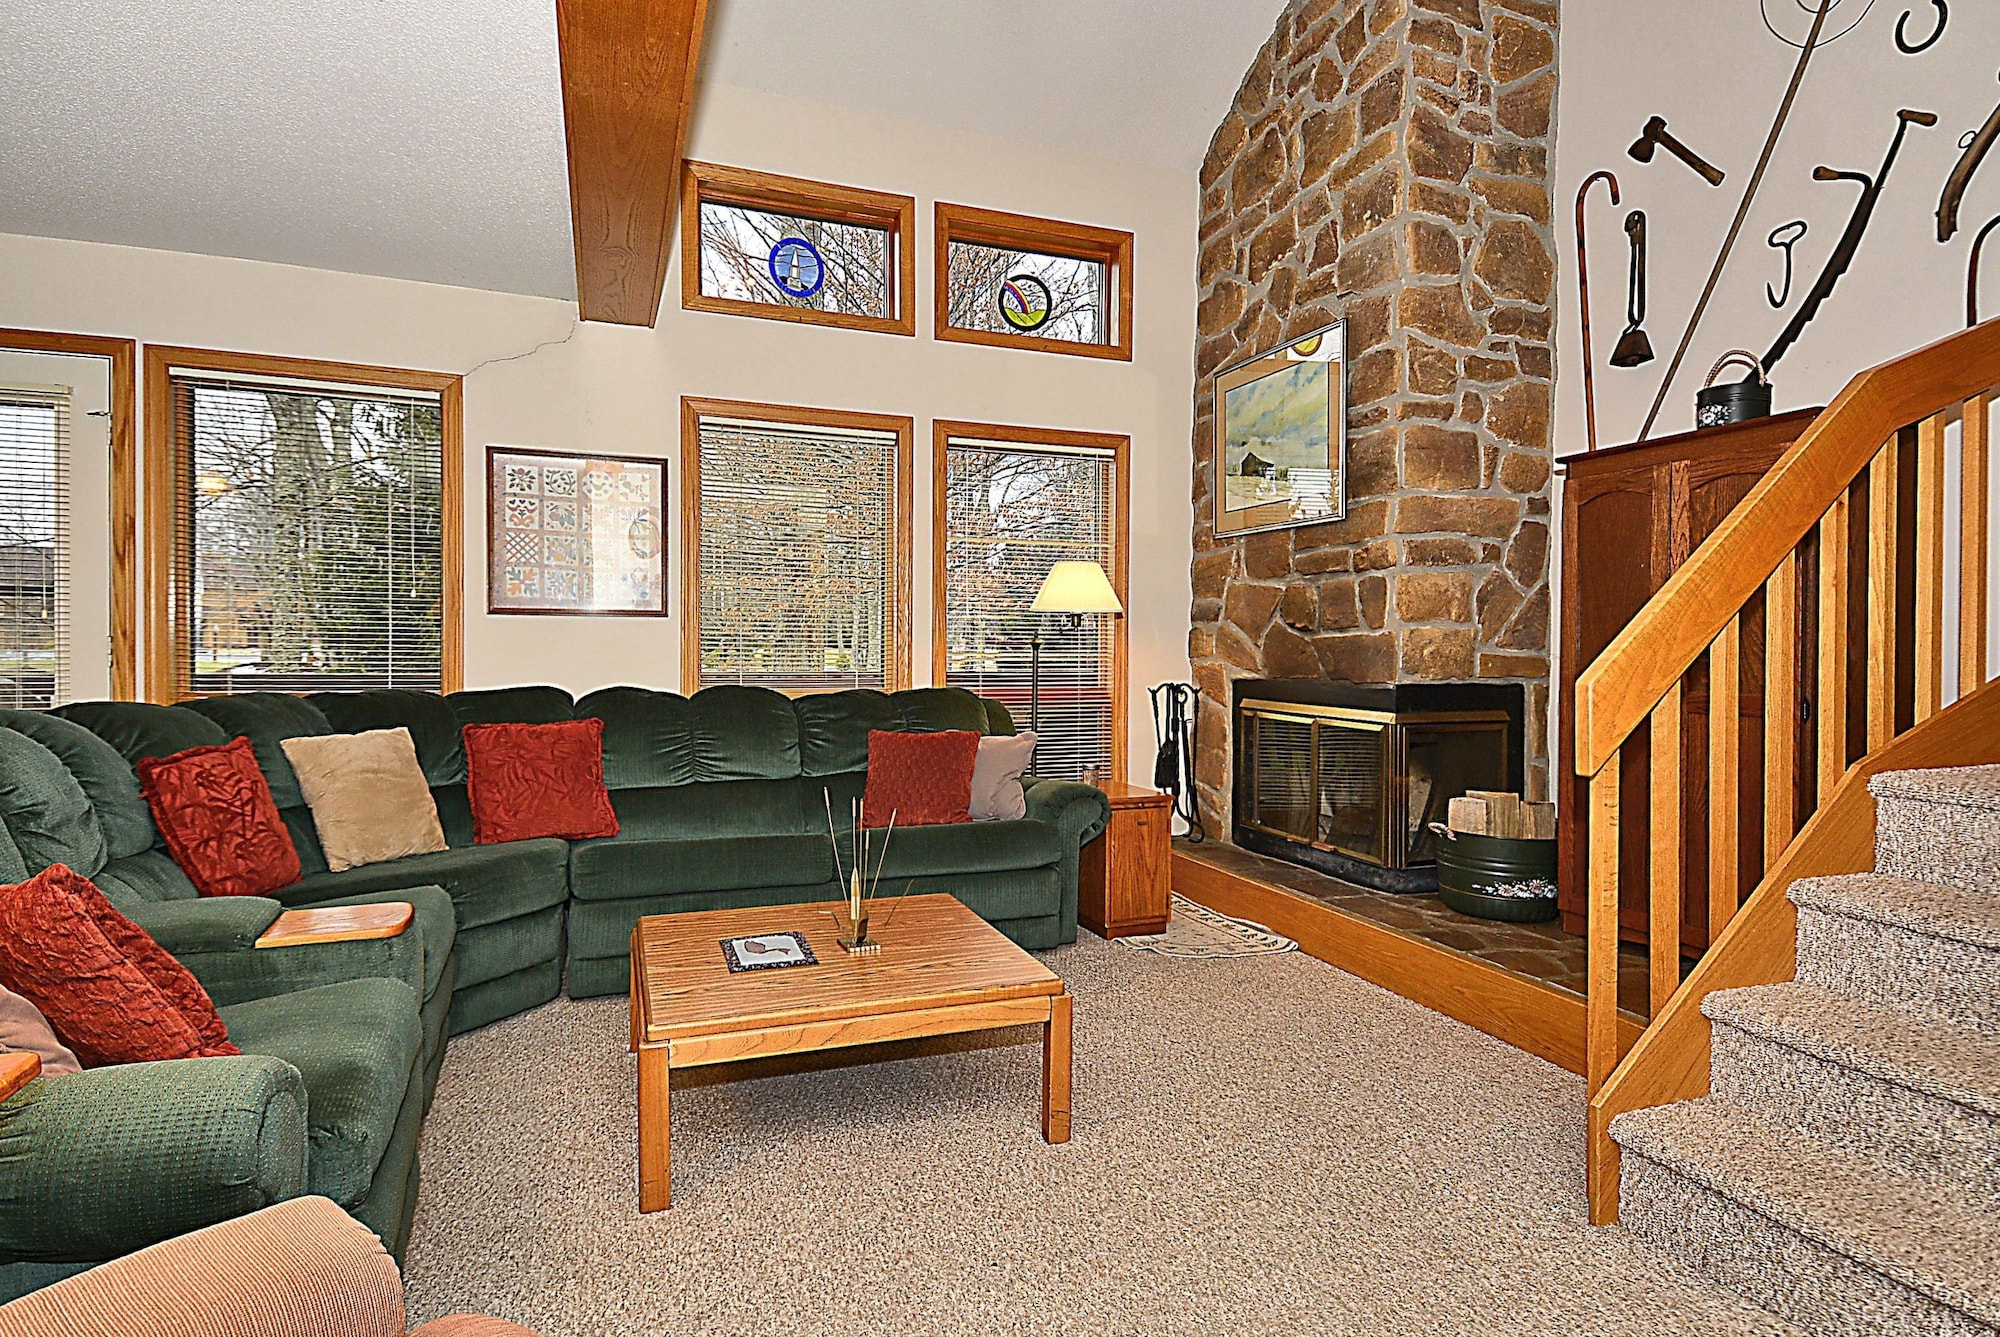 Bears Rhule - Two-Bedroom Condo, Tucker